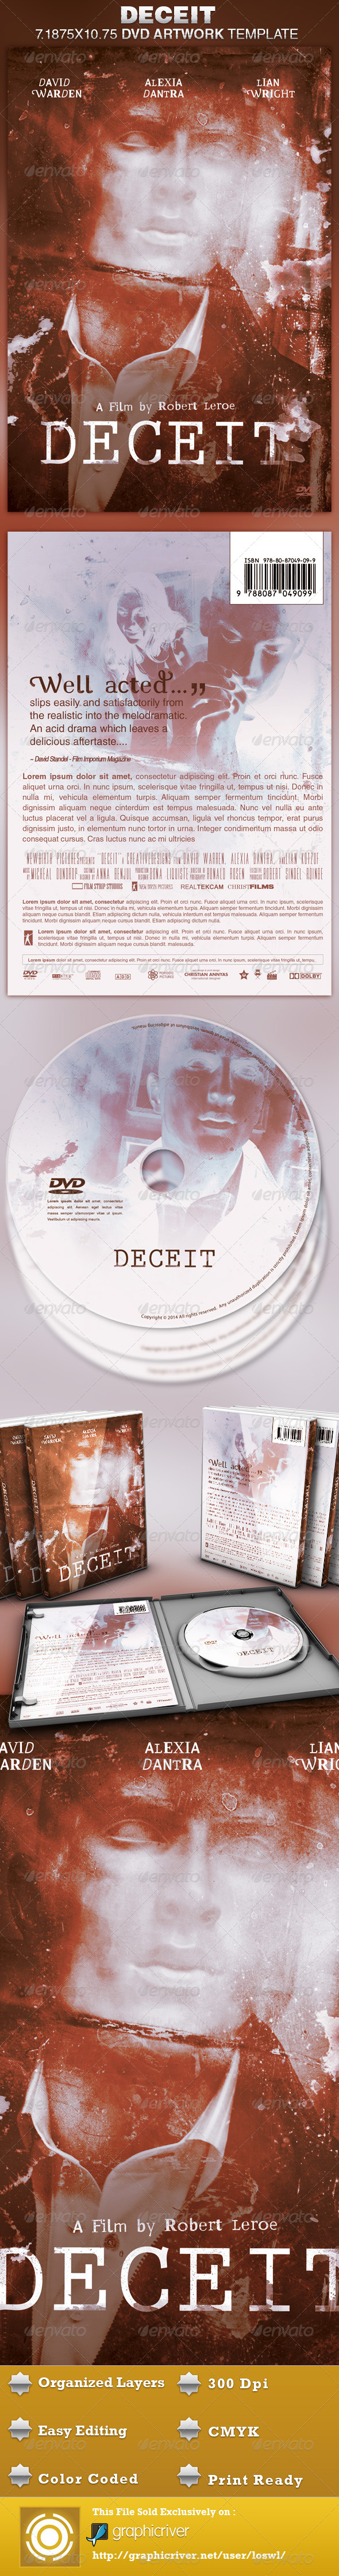 Deceit DVD Artwork Template